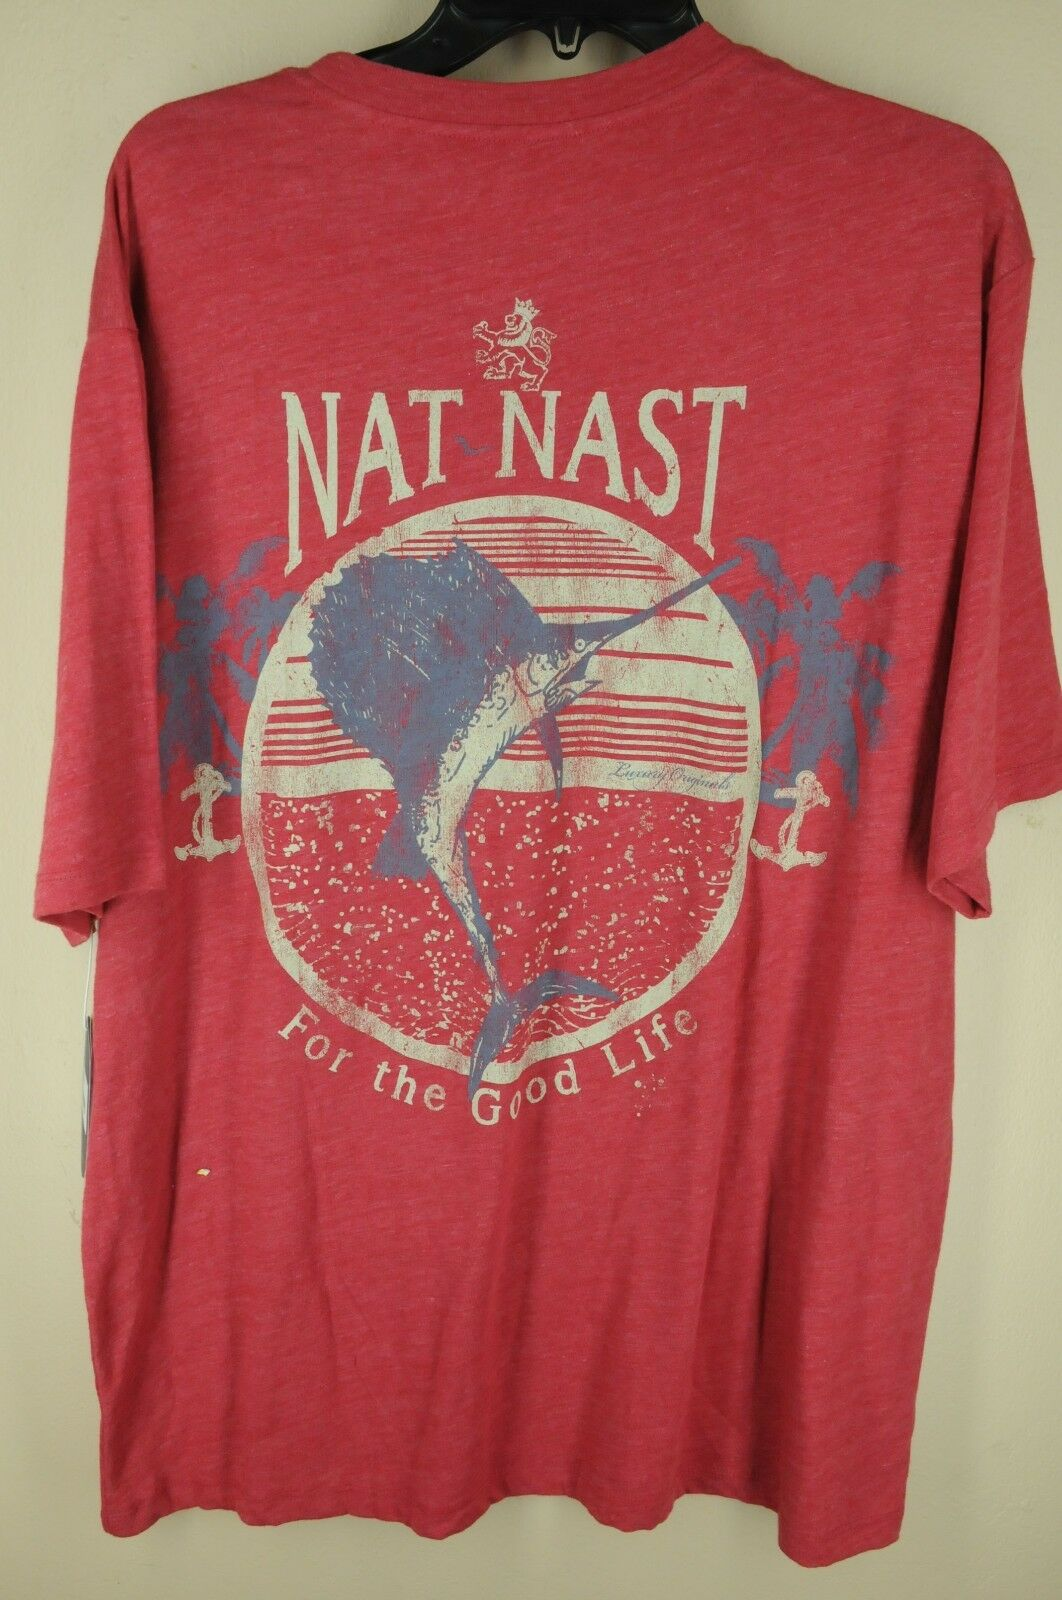 Nat Nast Luxury Originals Men's Red Graphic Polyester Cotton Shirt L Large NWT